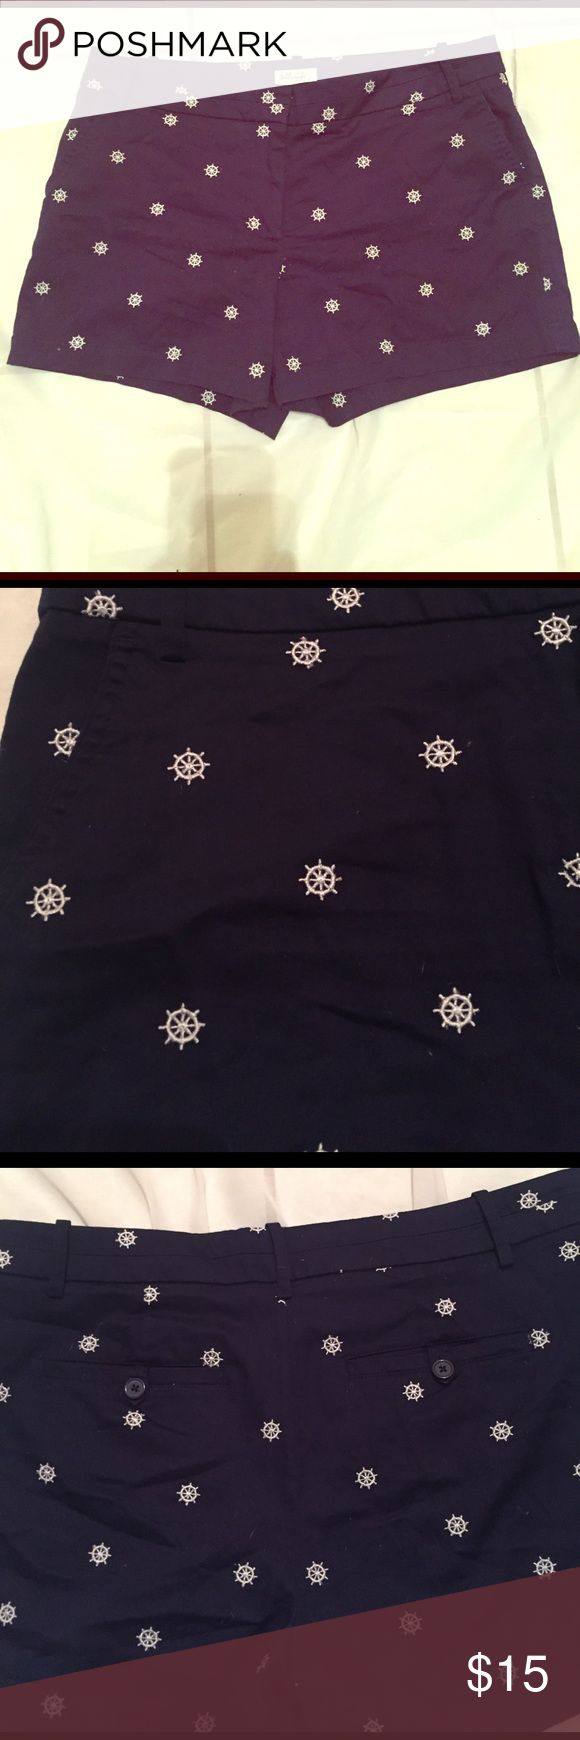 Cute Nautical Shorts Super cute nautical shorts in navy blue. They have little boat wheels embroidered all over in white. 2 back pockets and 2 pockets on the side/front.  Third pic is back view. telluride clothing Shorts